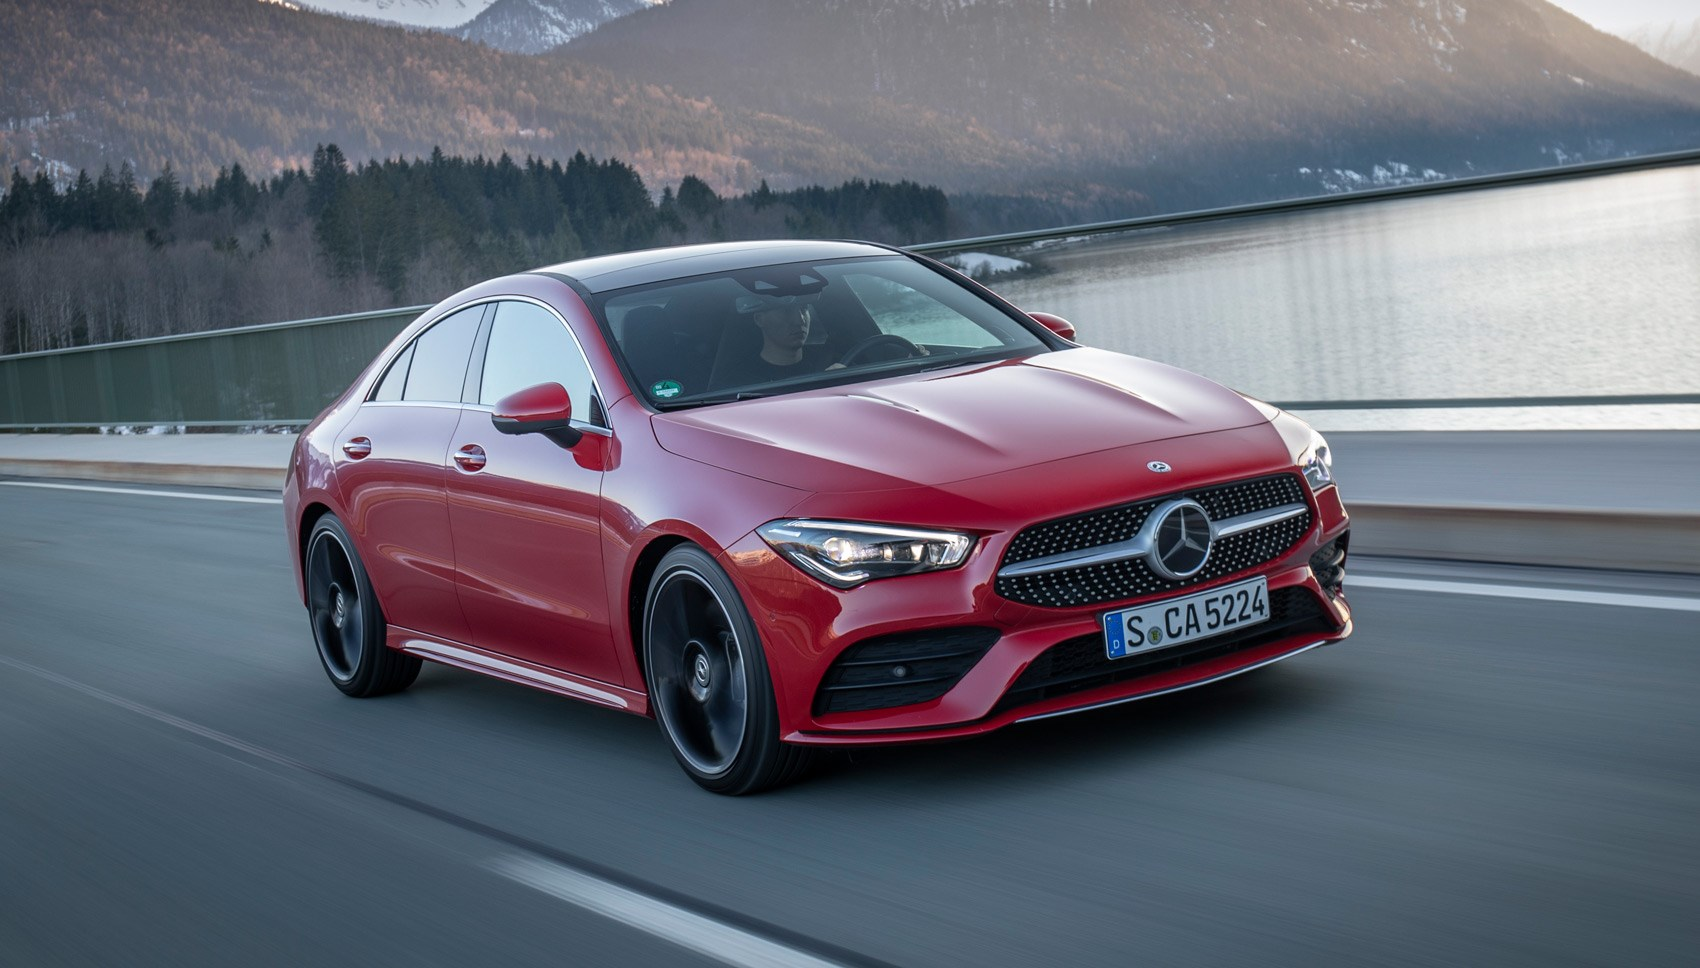 Mercedes CLA (2019) Review: First Drive Of Four-door Coupe